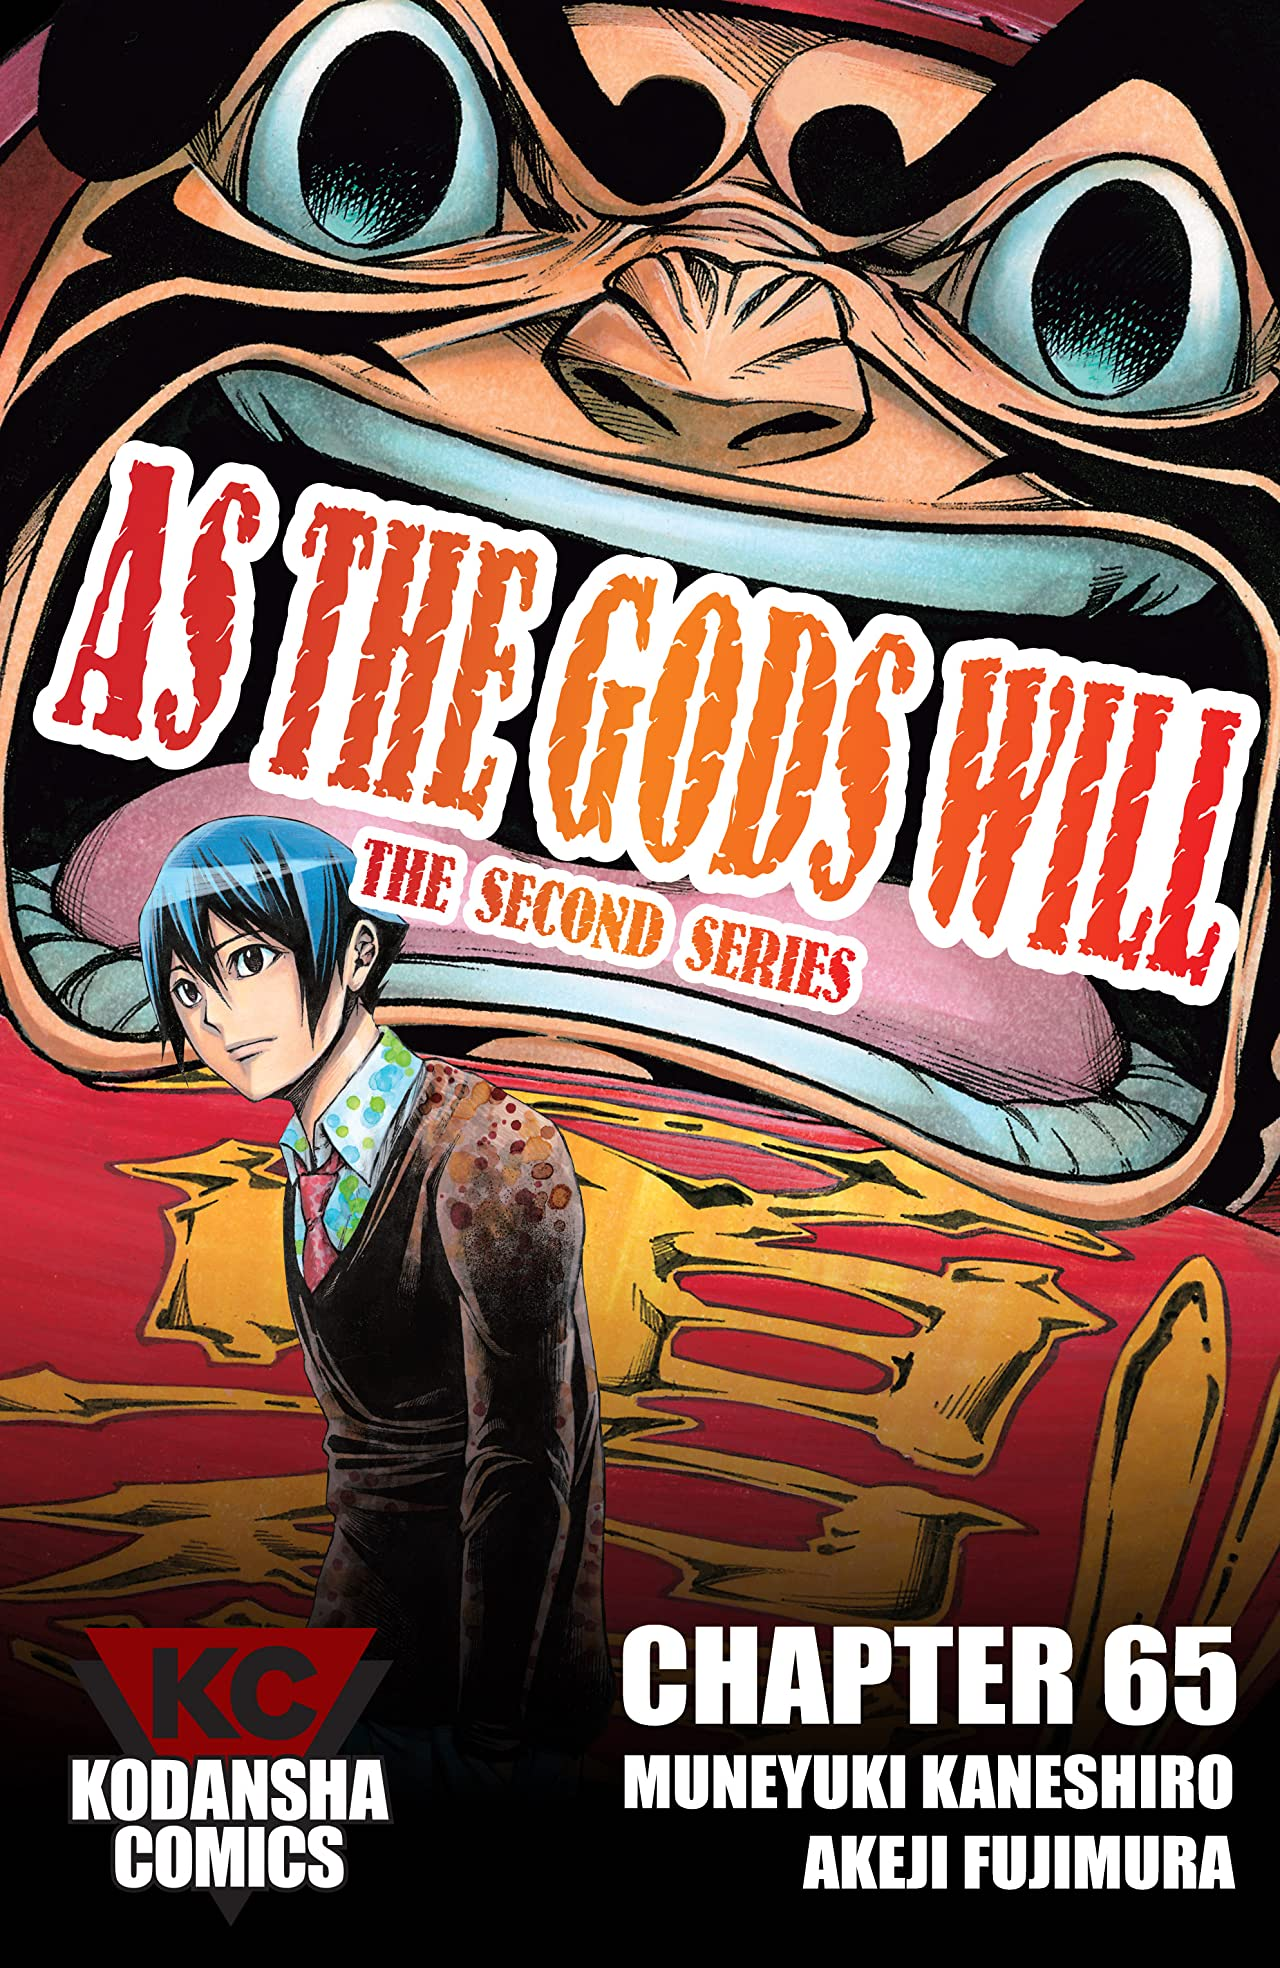 As The Gods Will: The Second Series #65